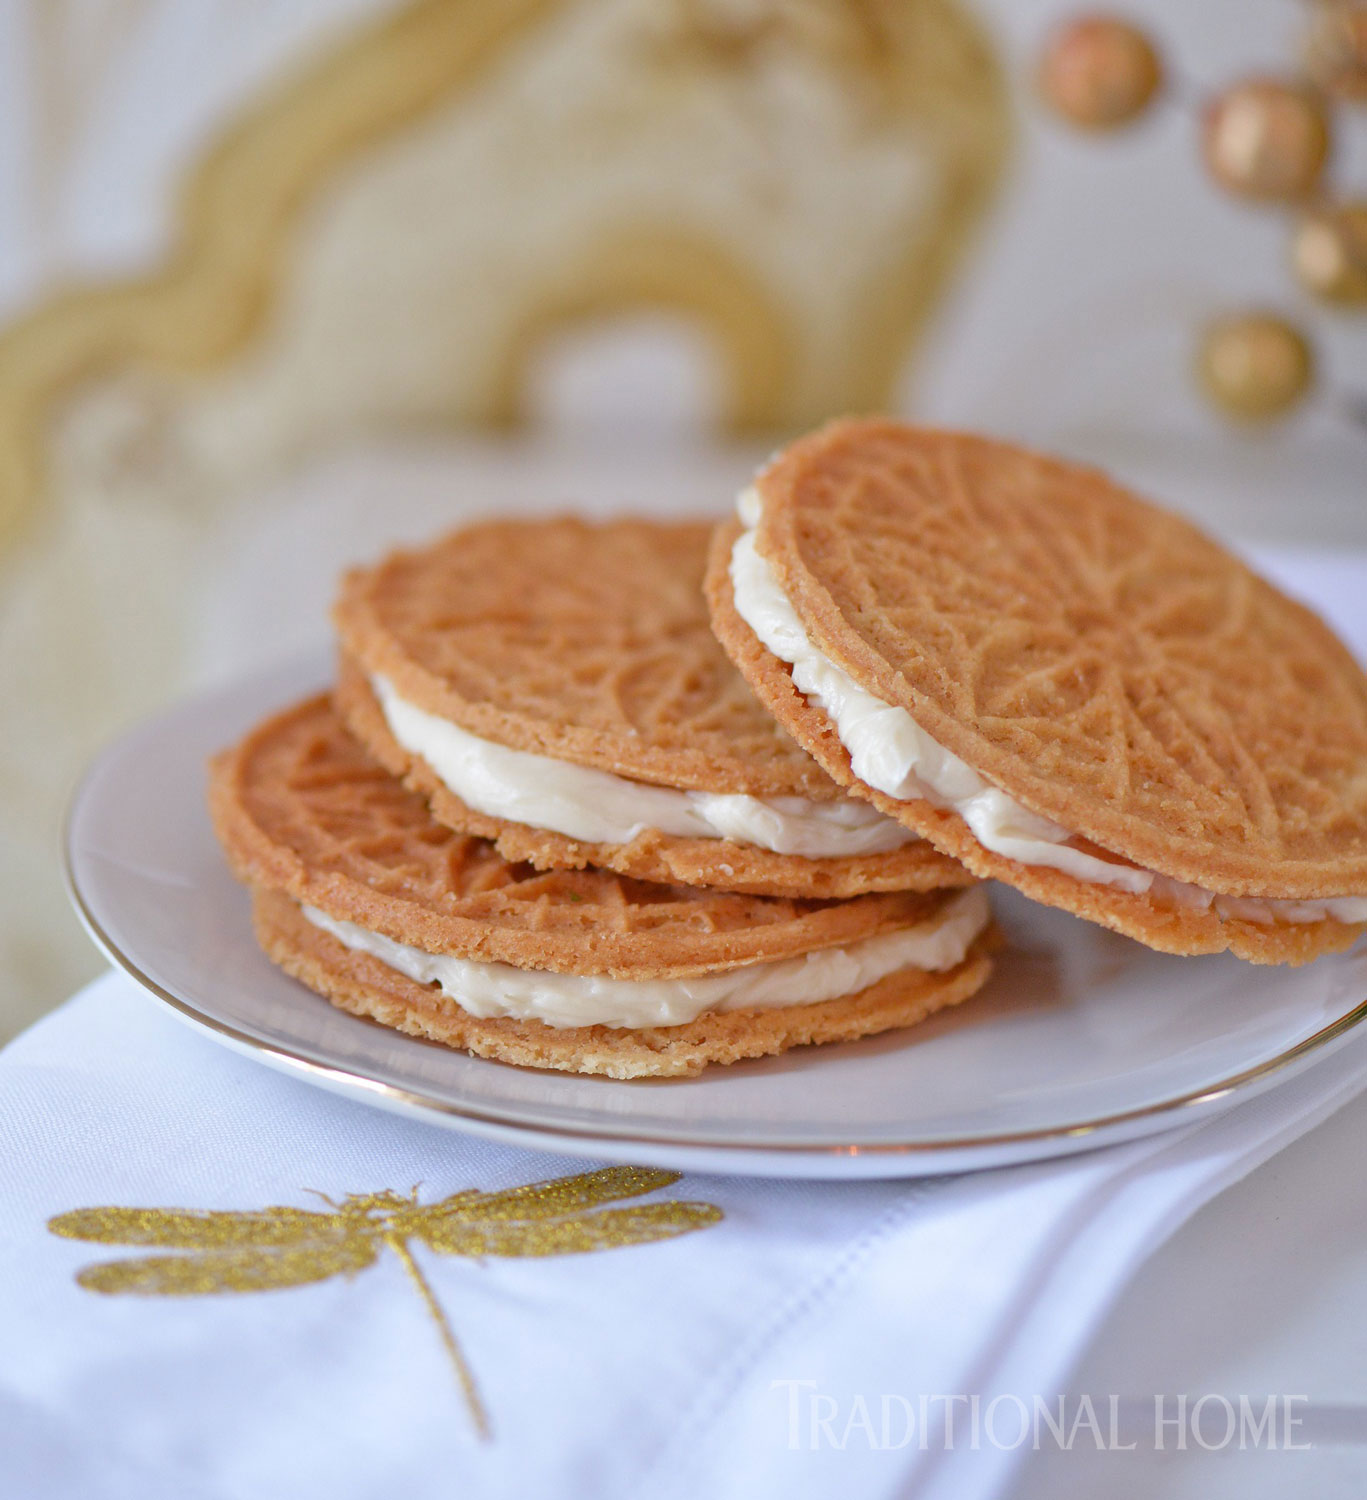 Waffle Wafer Cookies A French-Canadian Chri...